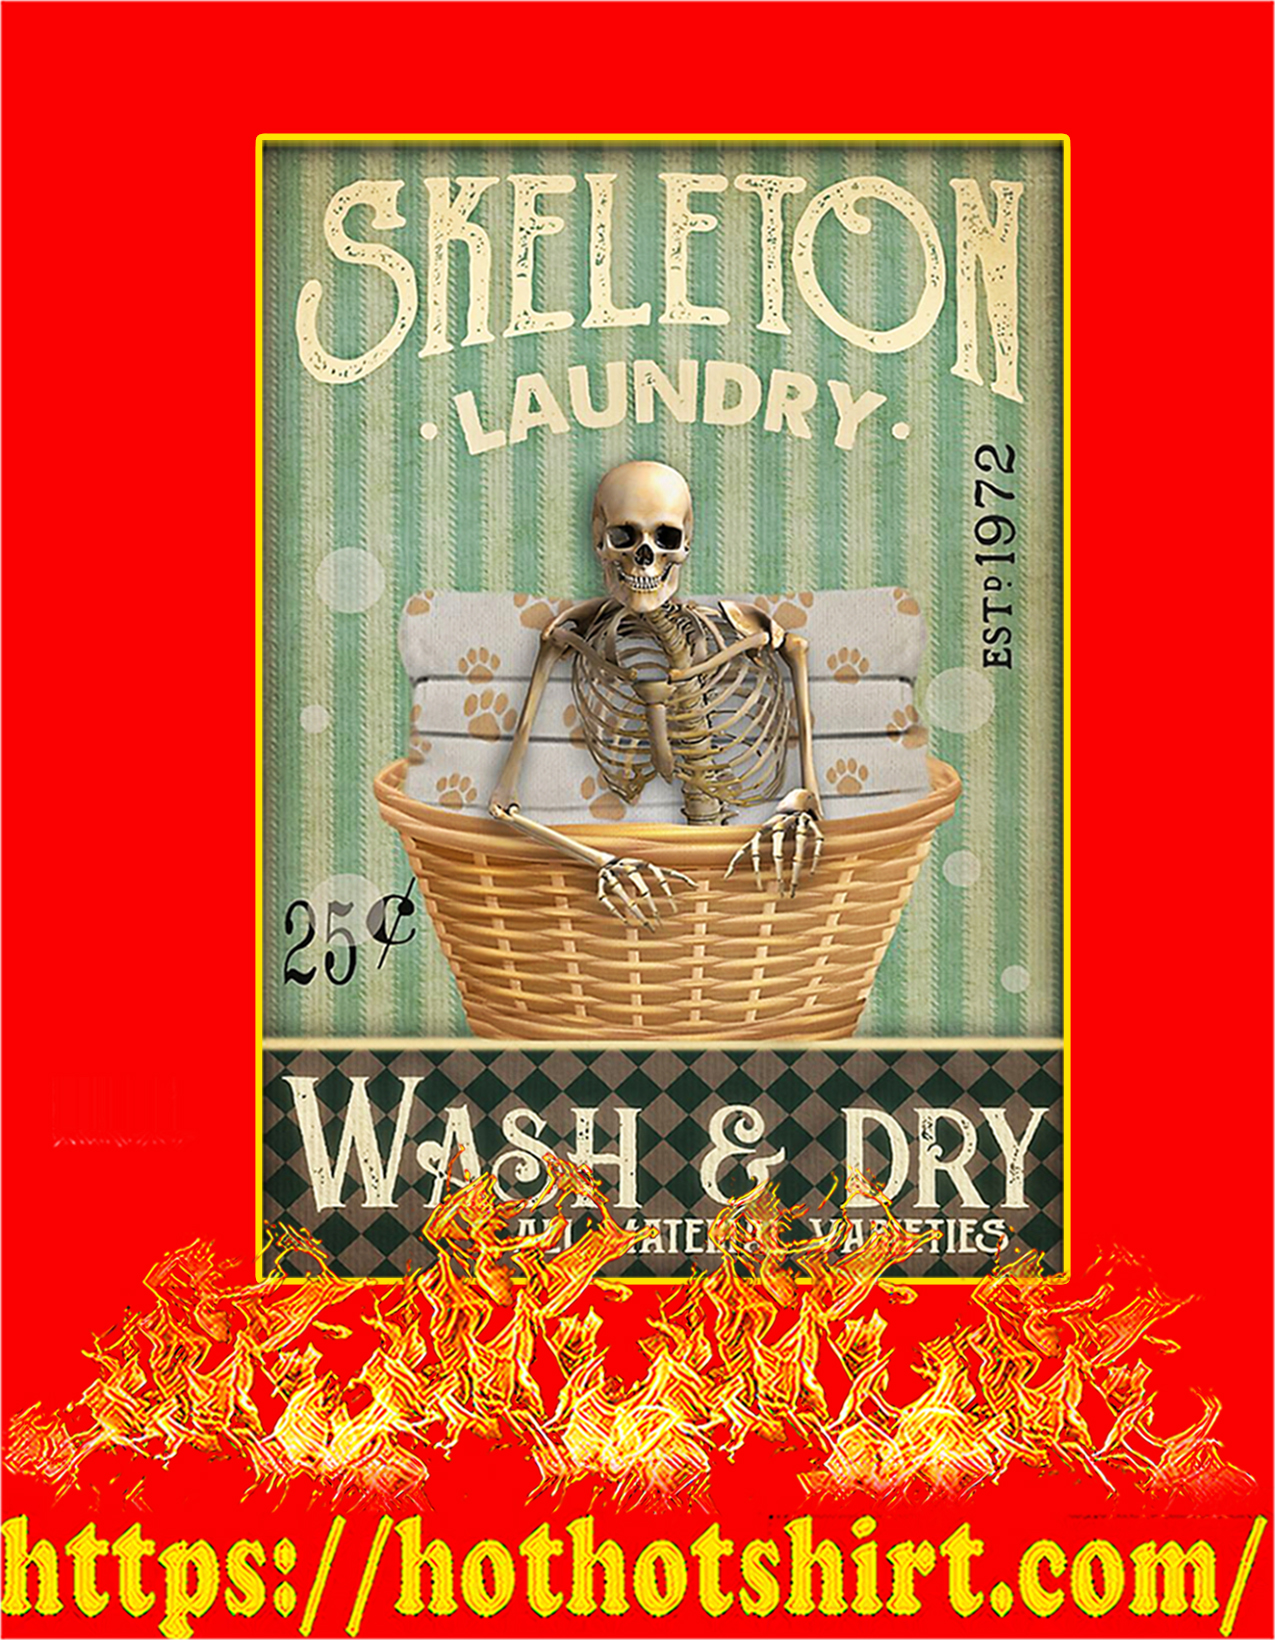 Skeleton laundry wash and dry poster - A4